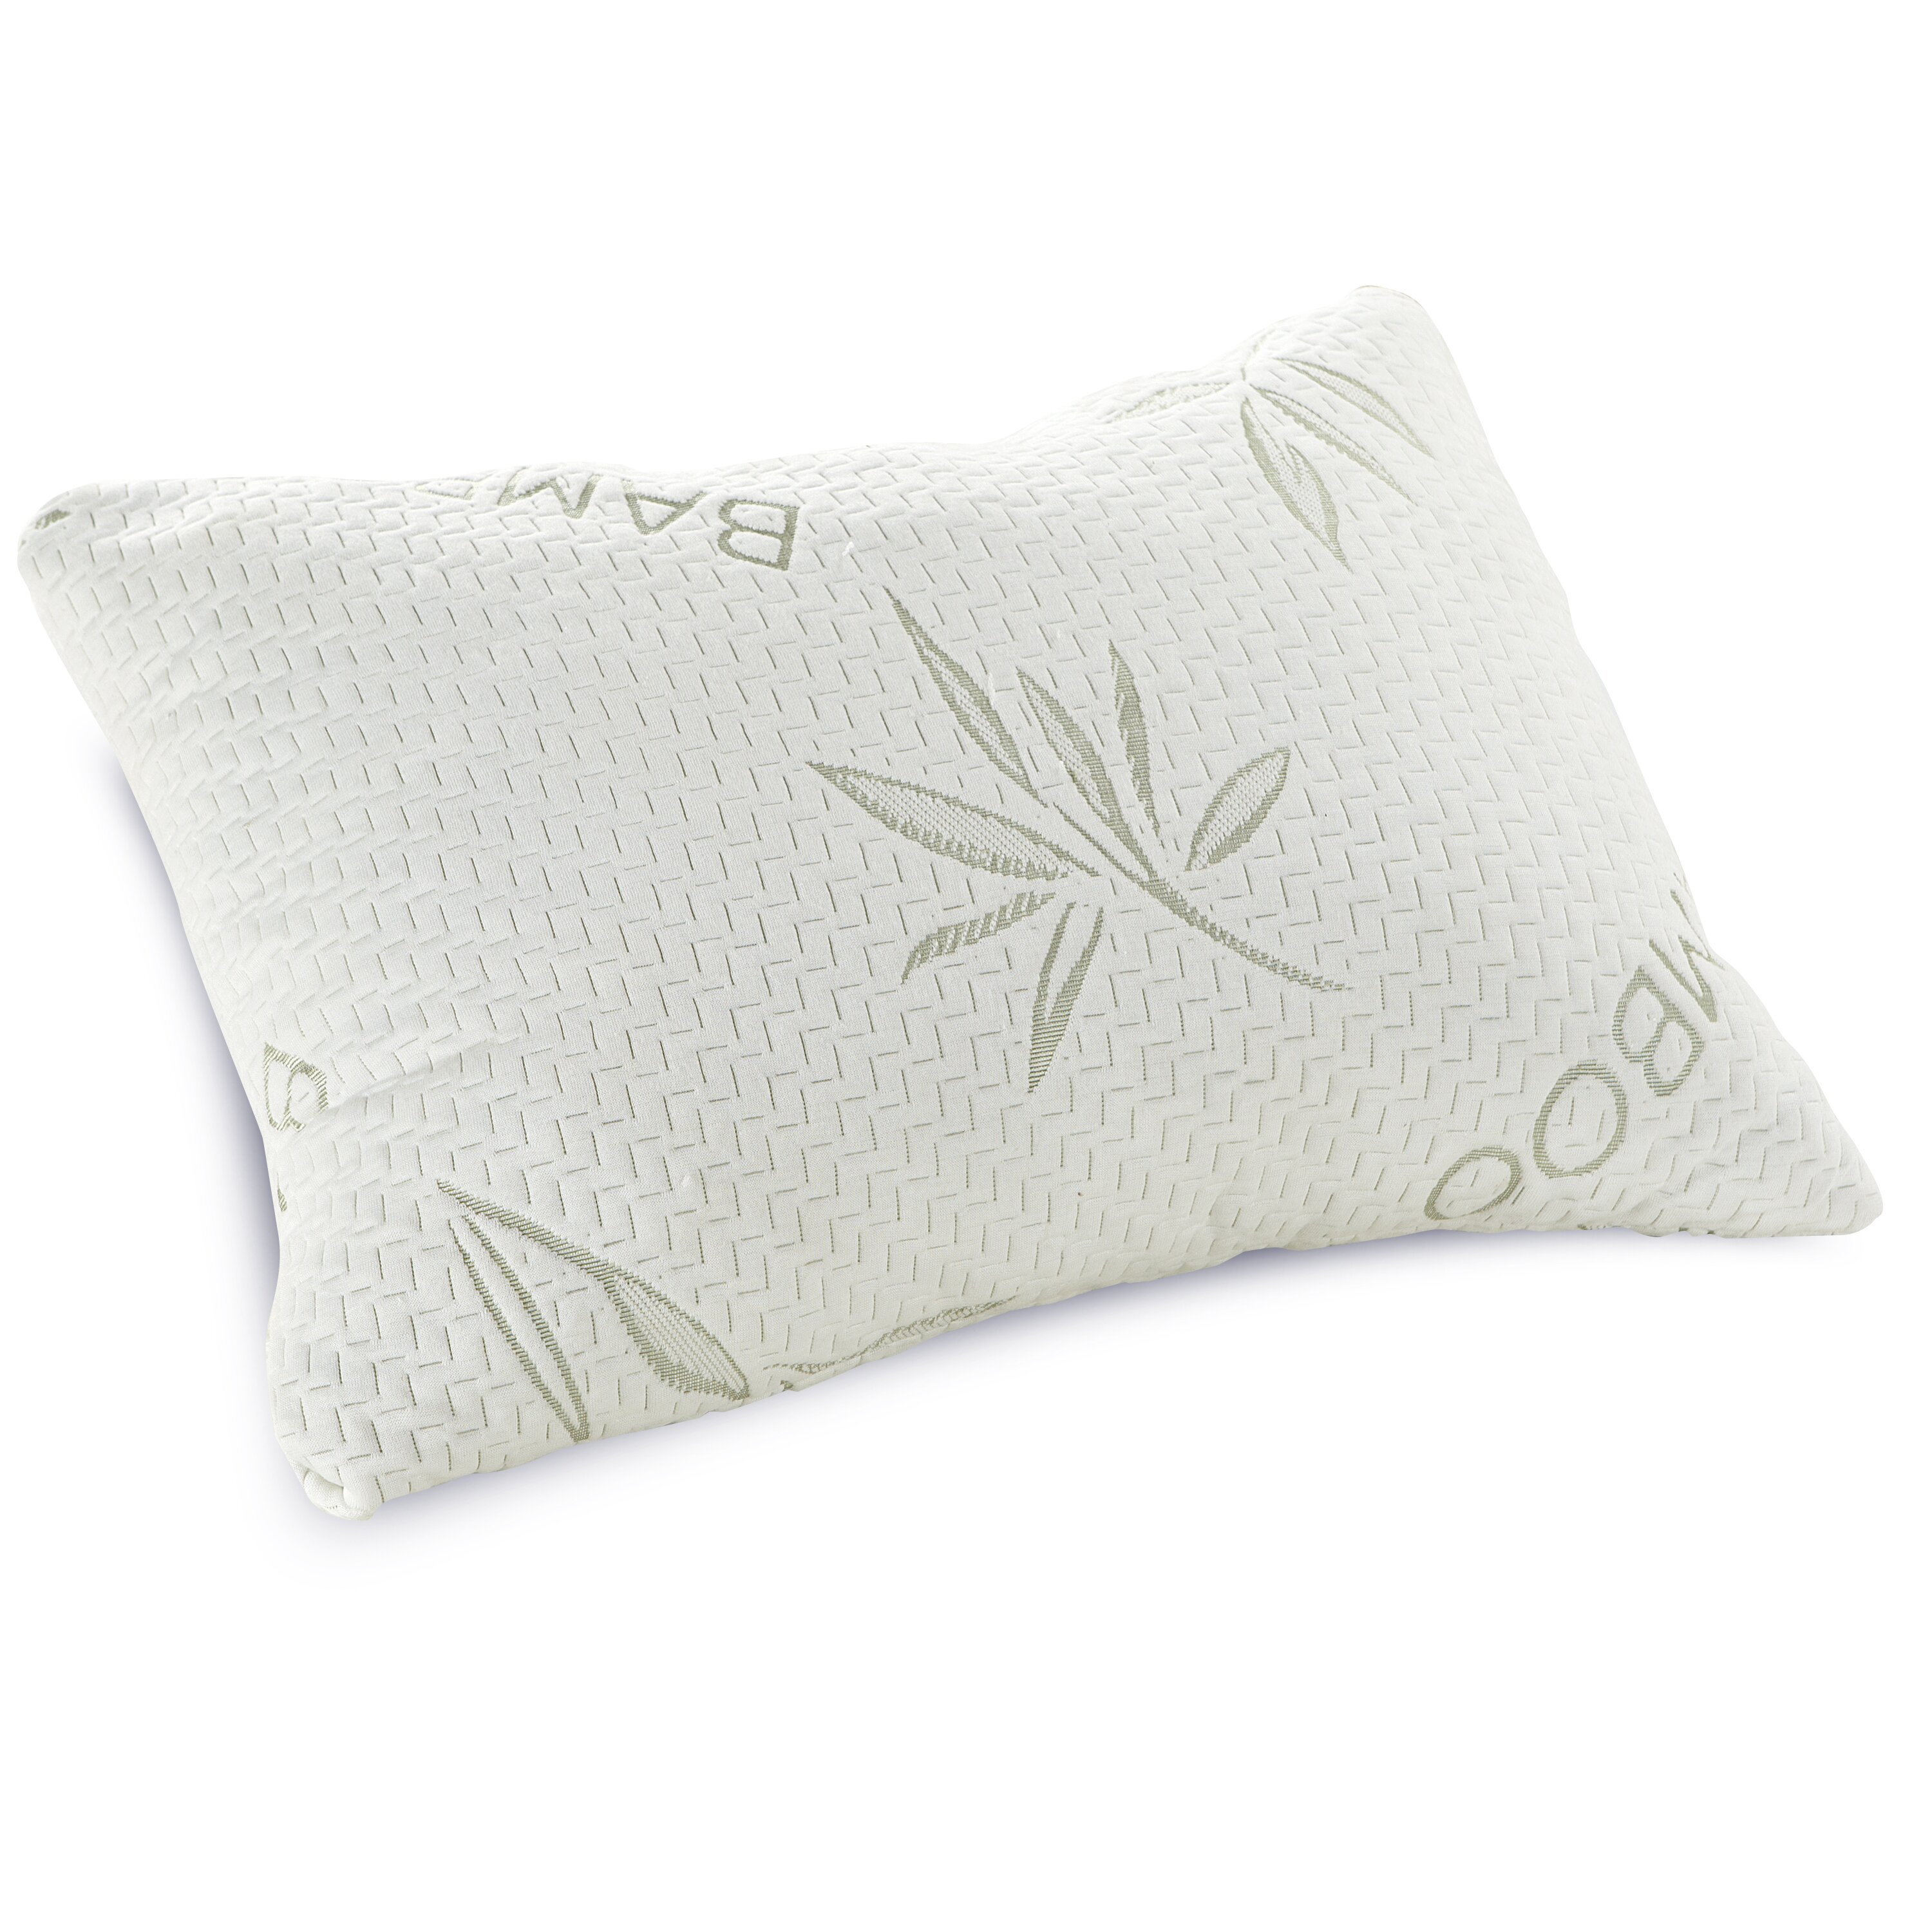 Classic Brands Shredded Memory Foam Queen Pillow with Bamboo Rayon Cover & Reviews Wayfair